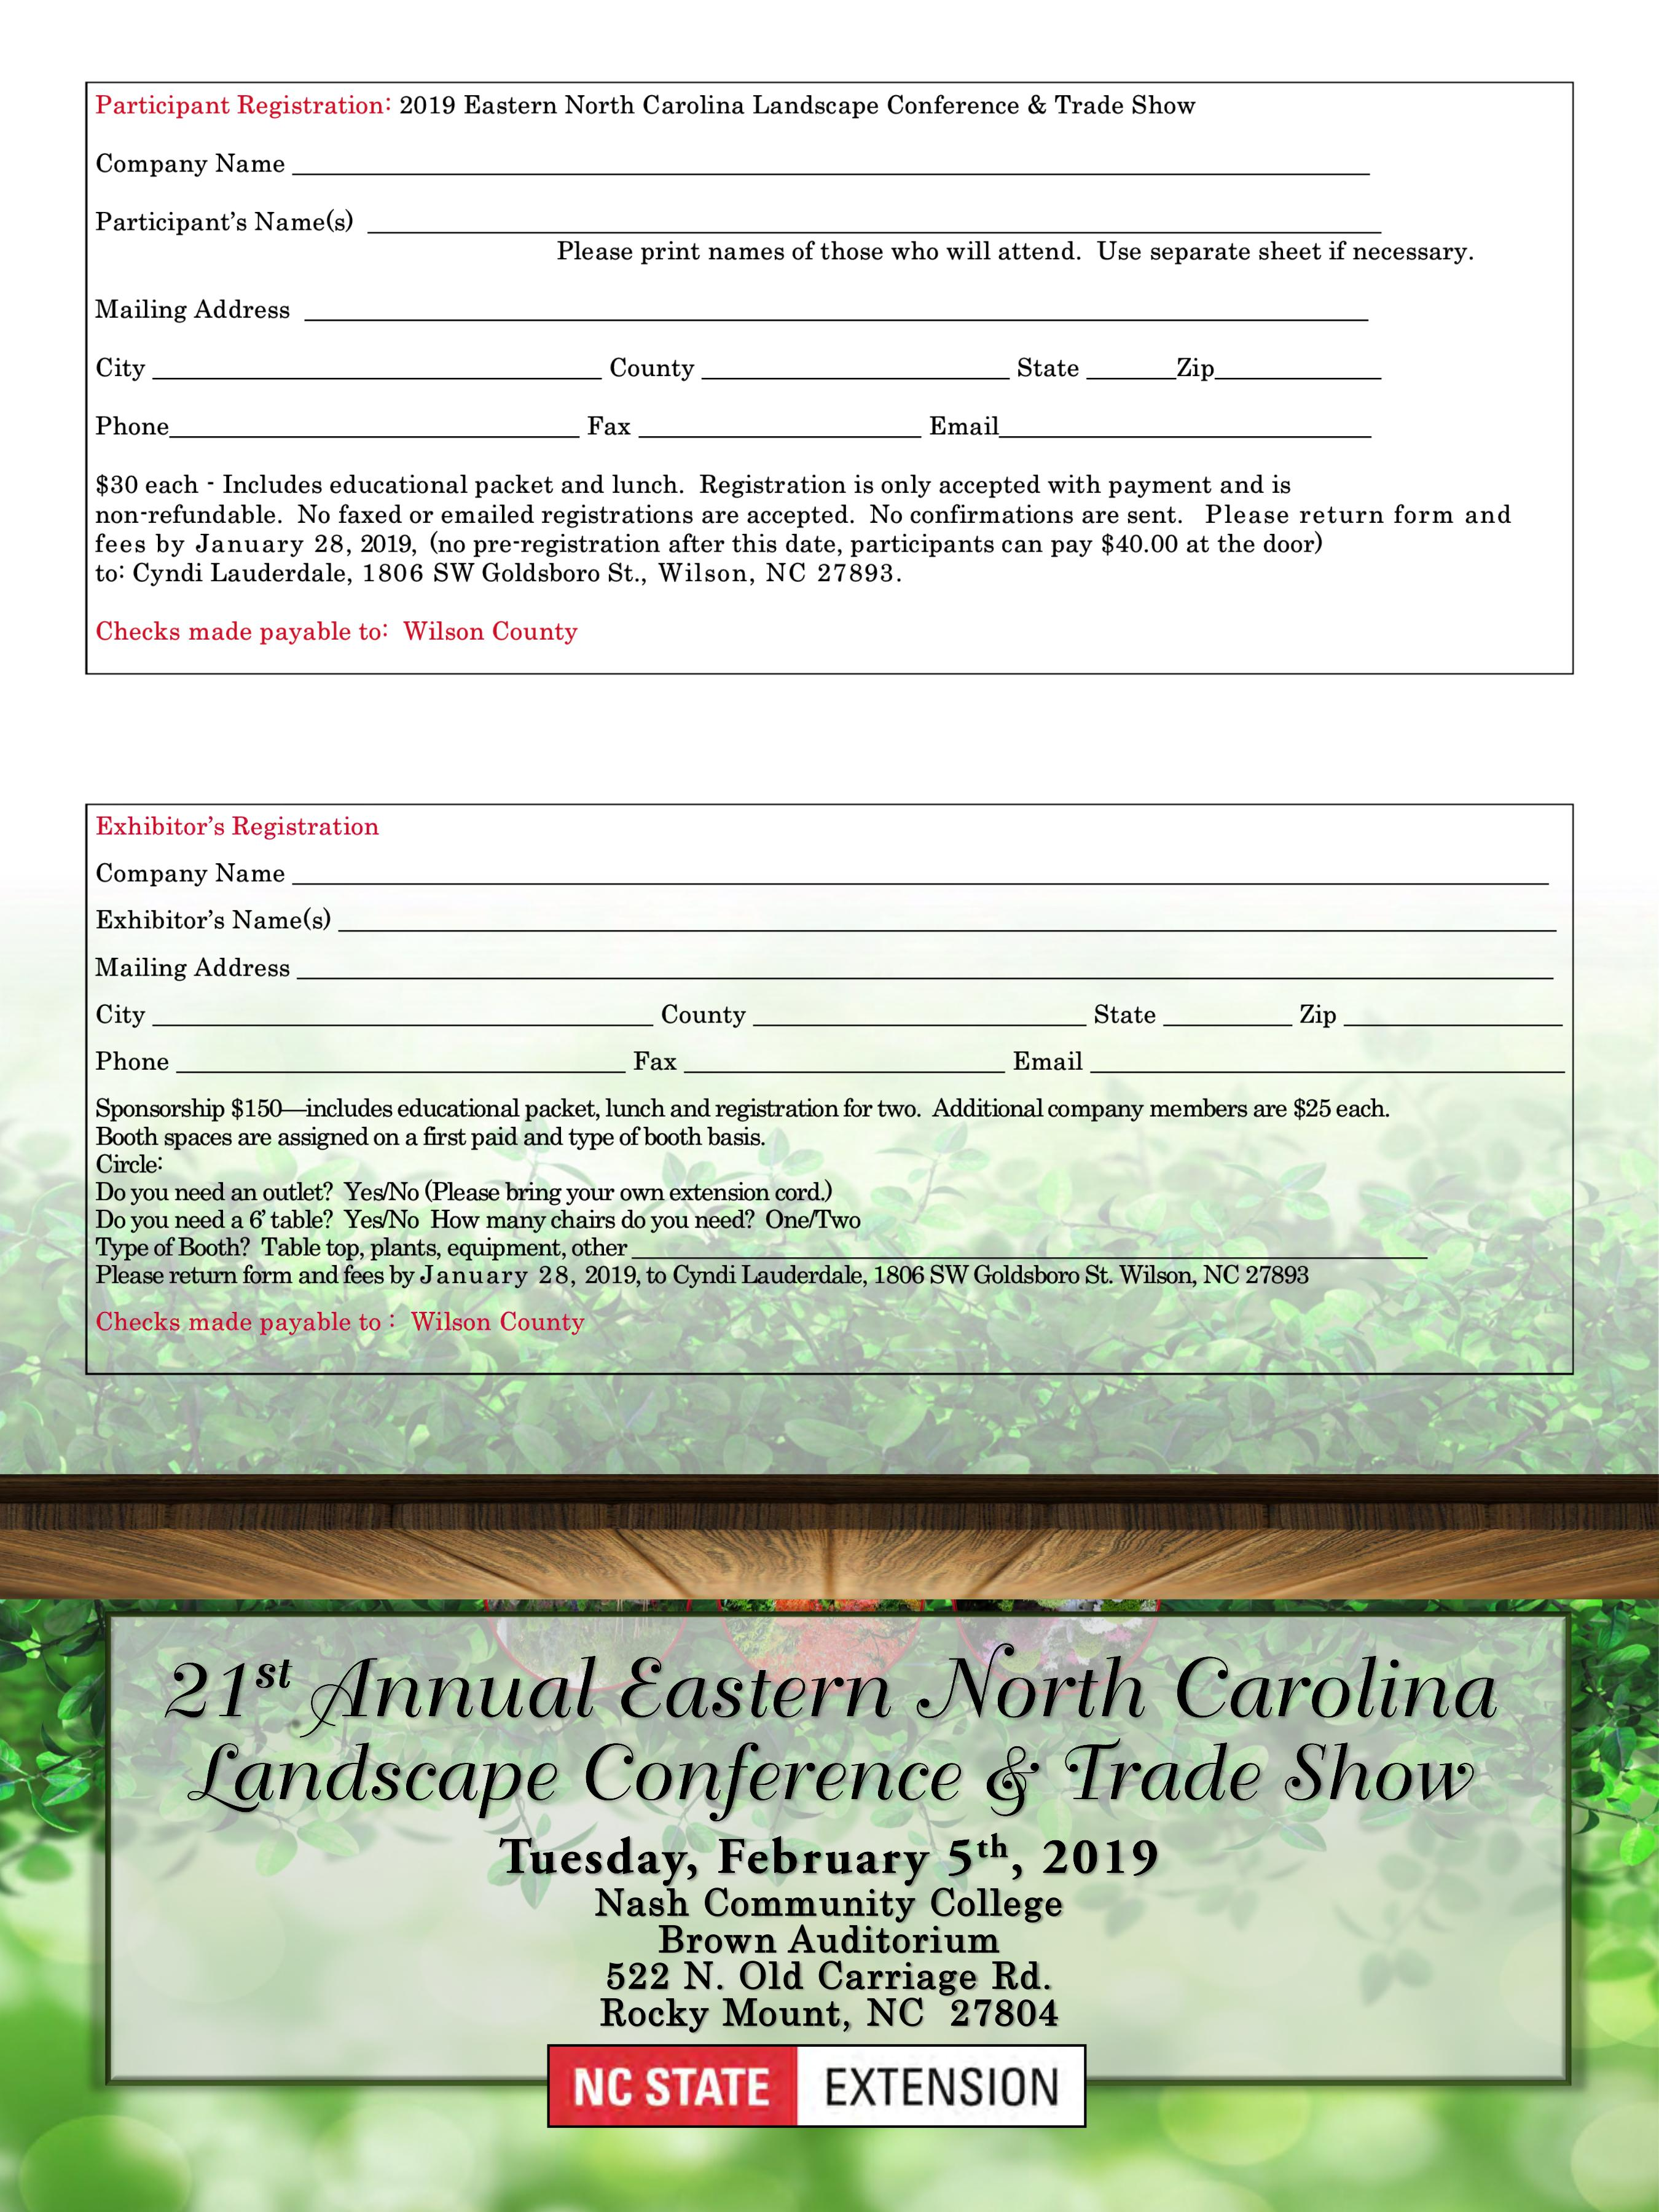 21st Annual Eastern North Carolina Landscape Conference and